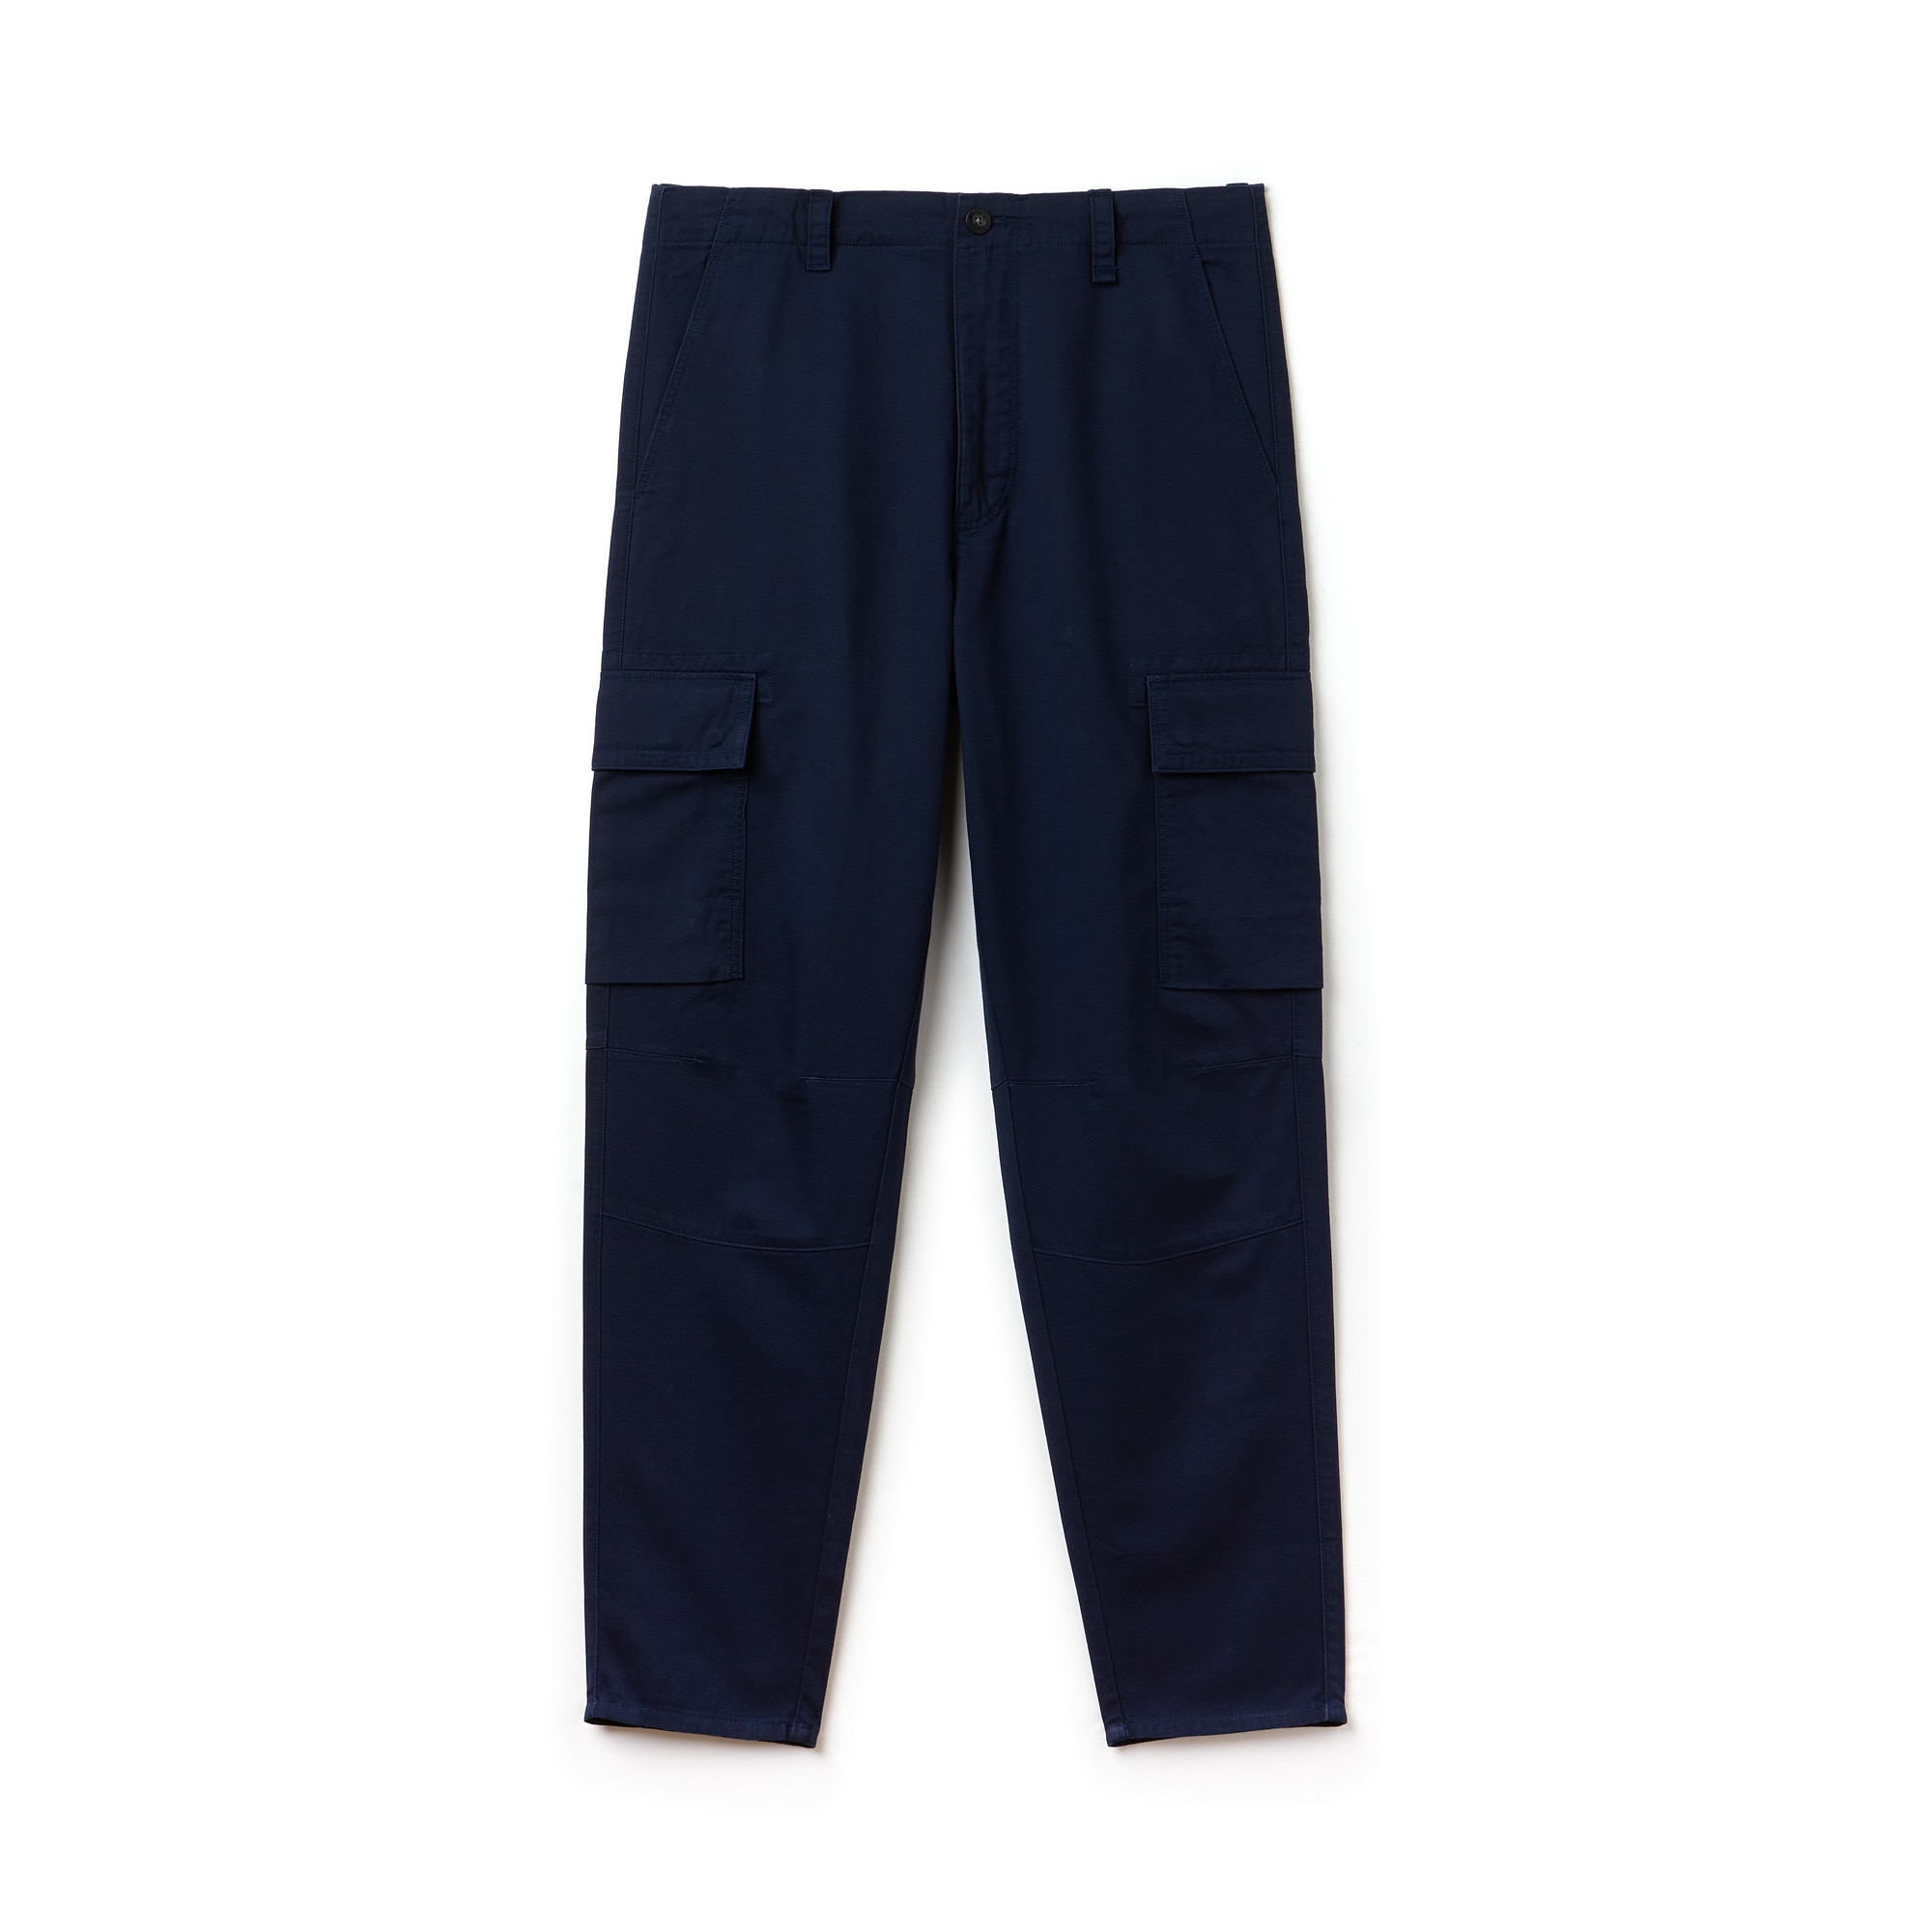 Men's Cotton Twill Cargo Pants